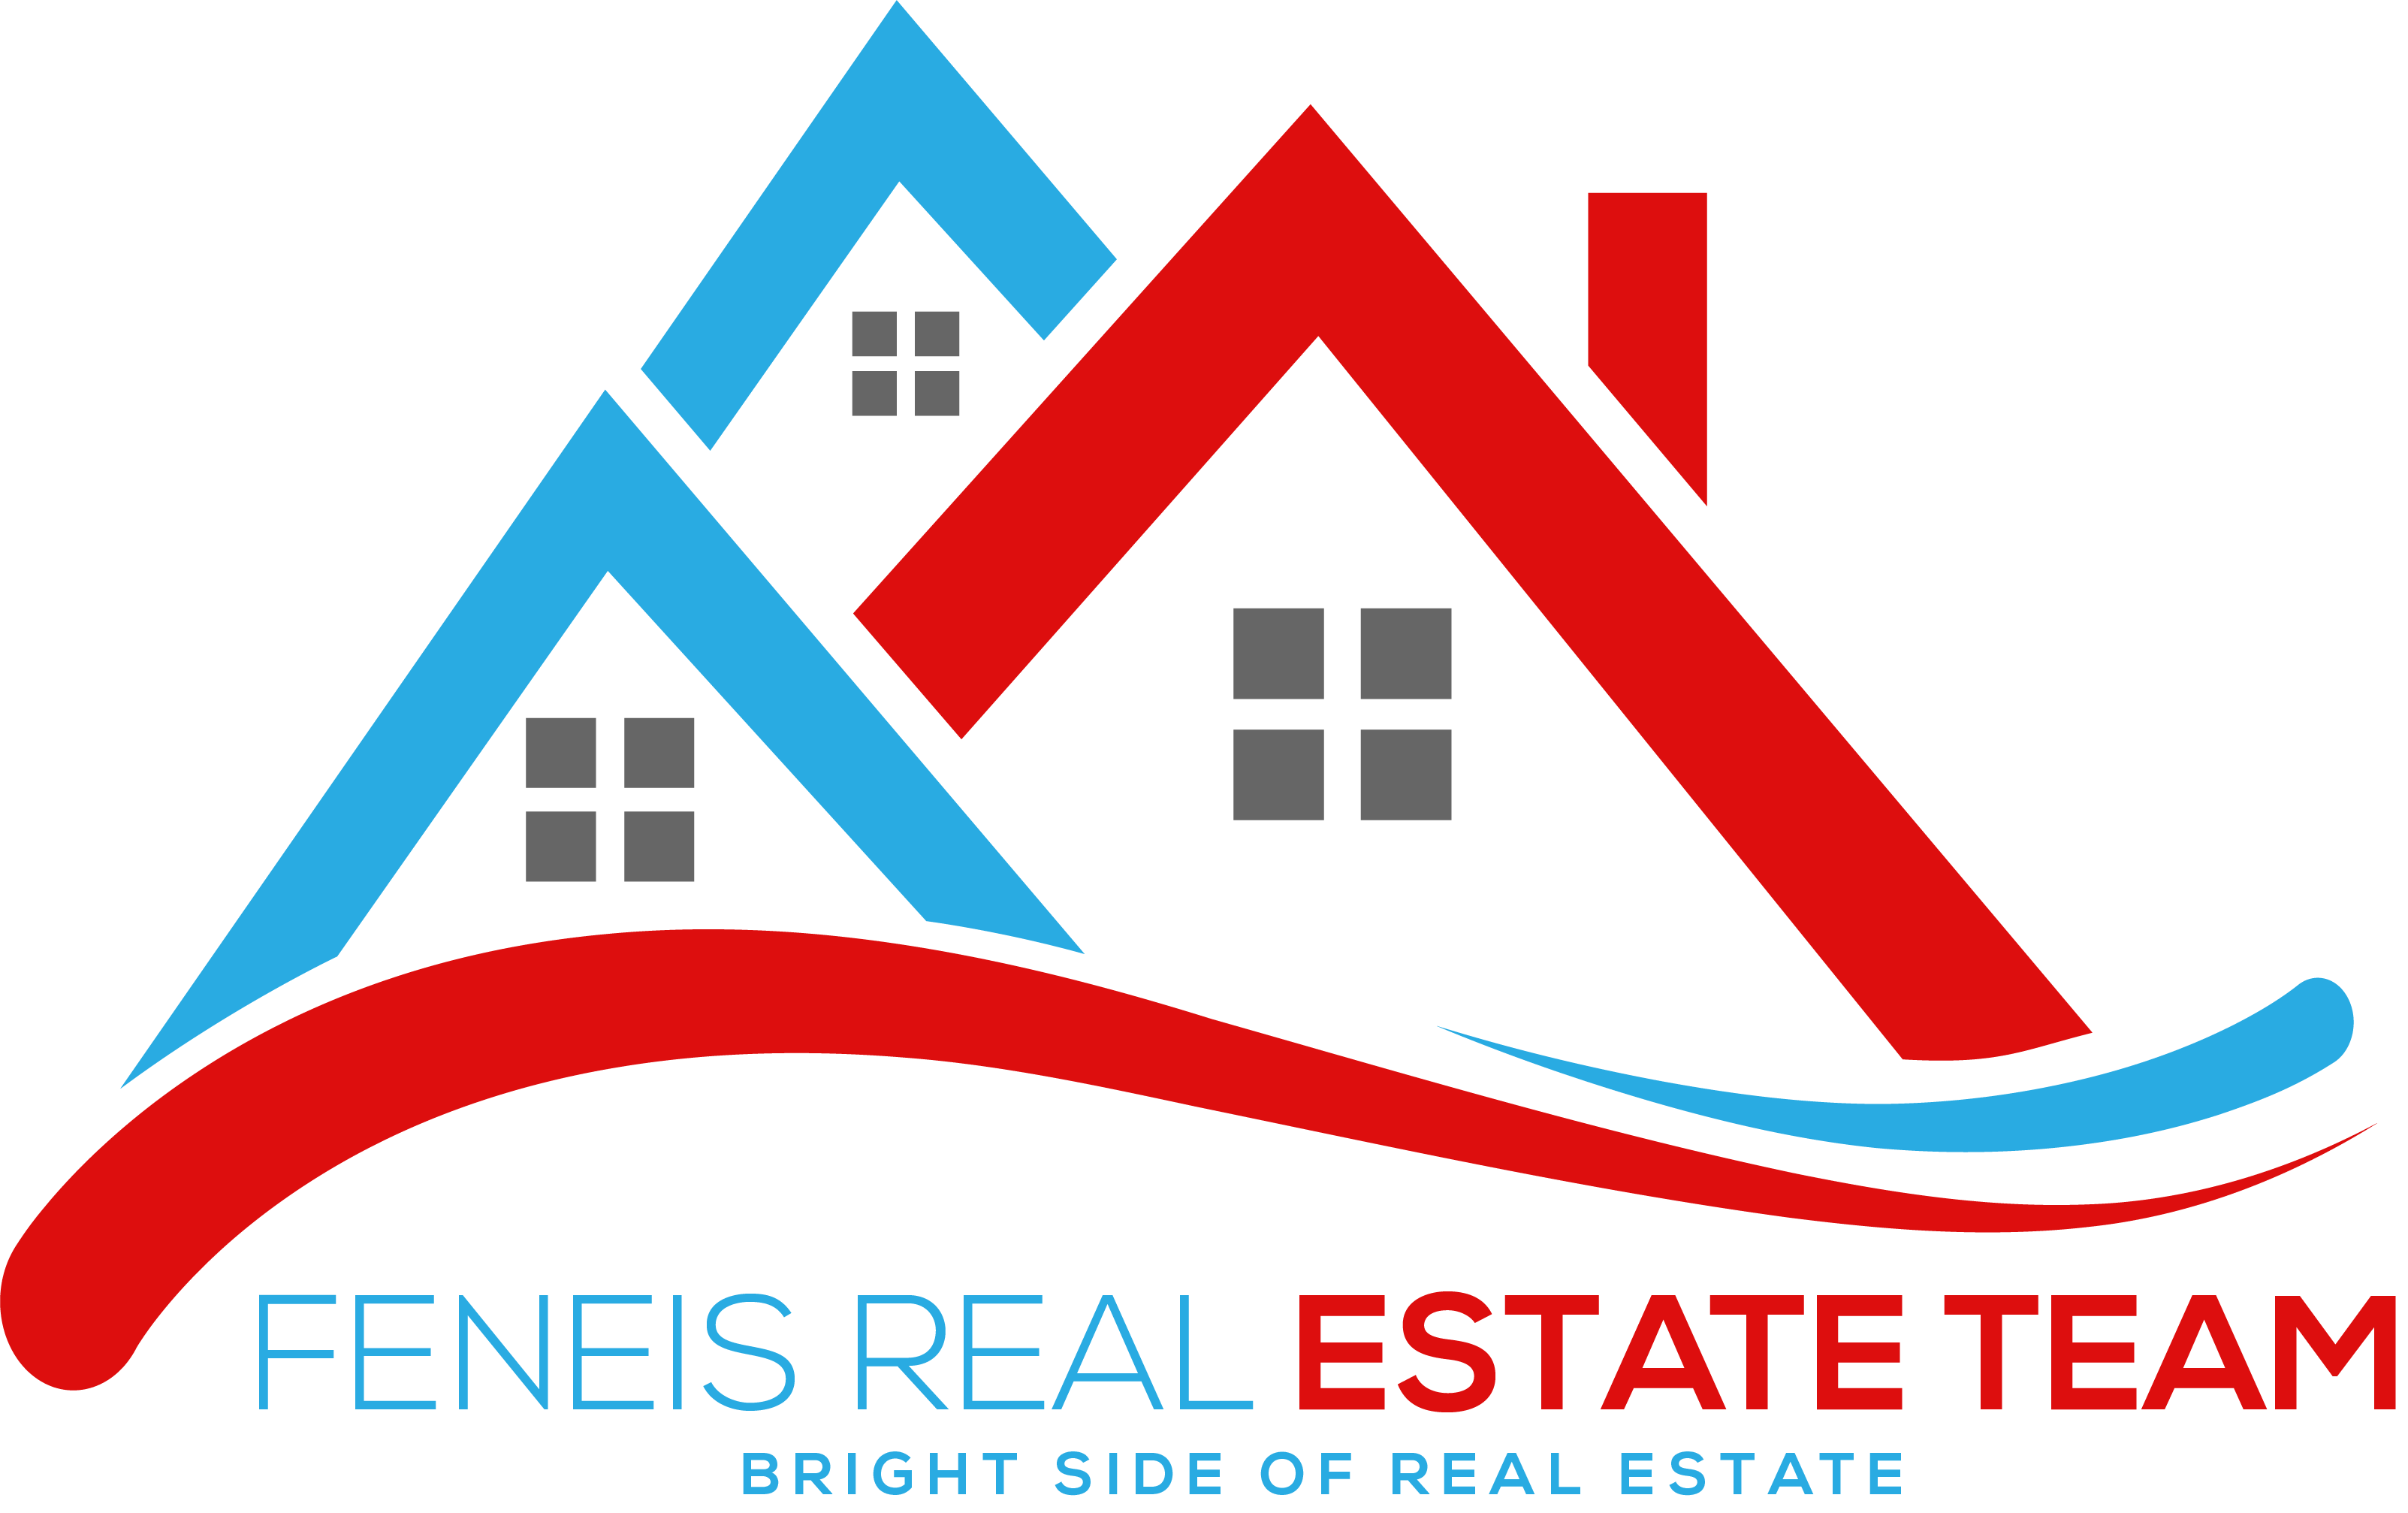 Feneis Real Estate Team